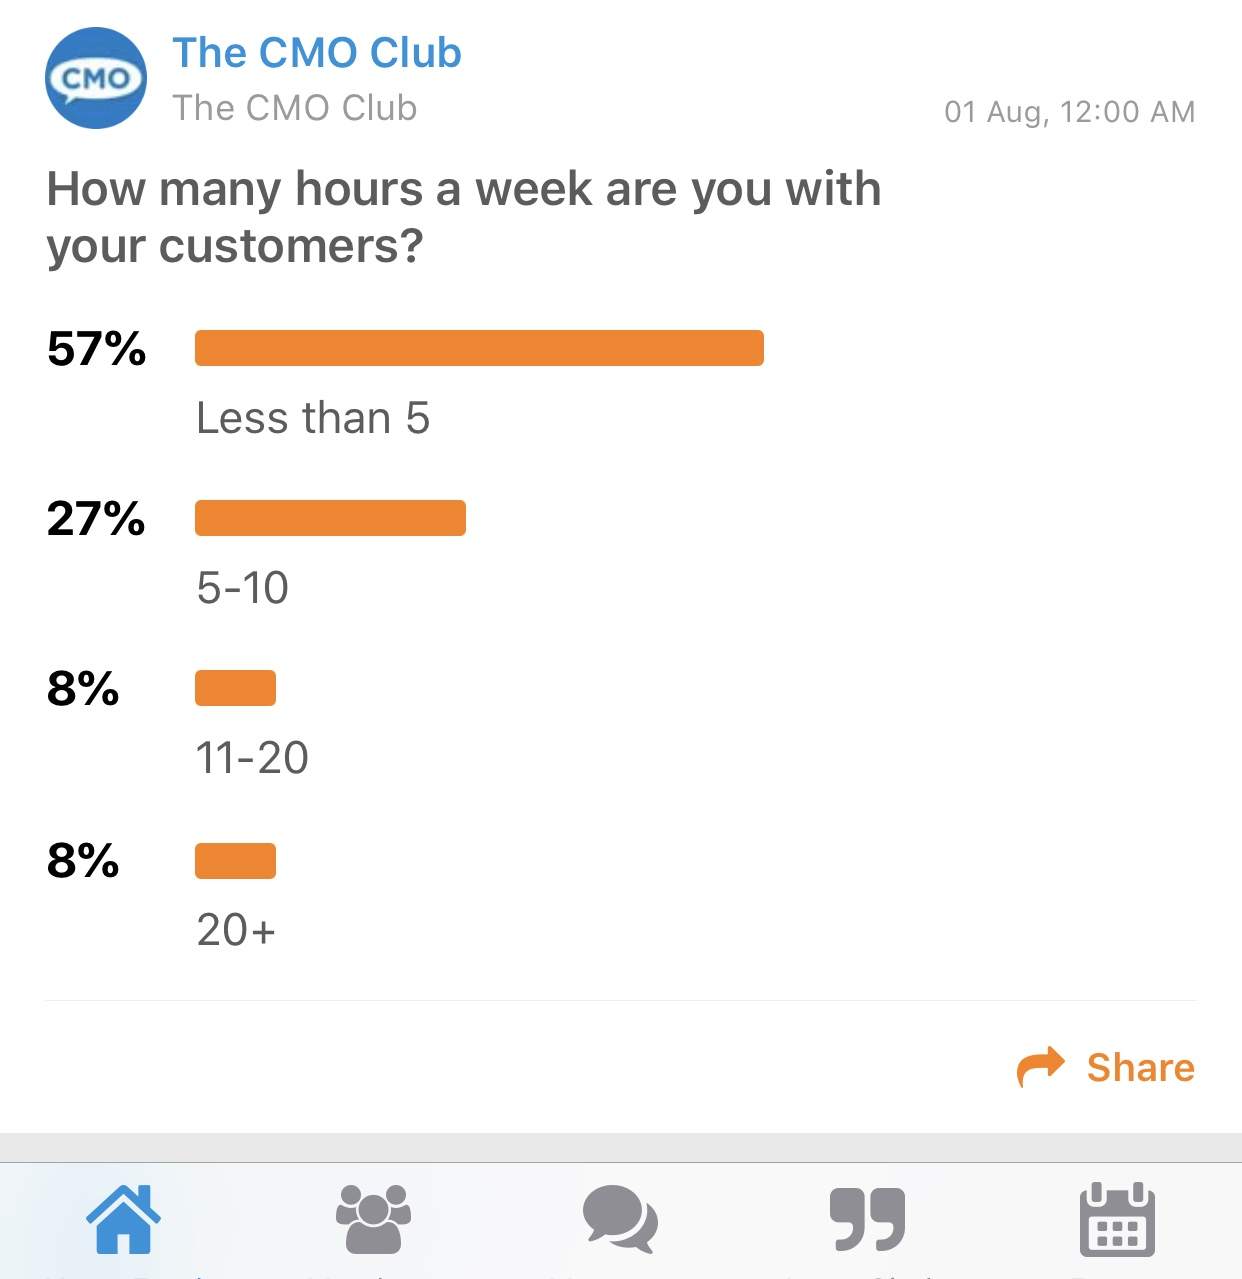 CMO Poll Time with Customer